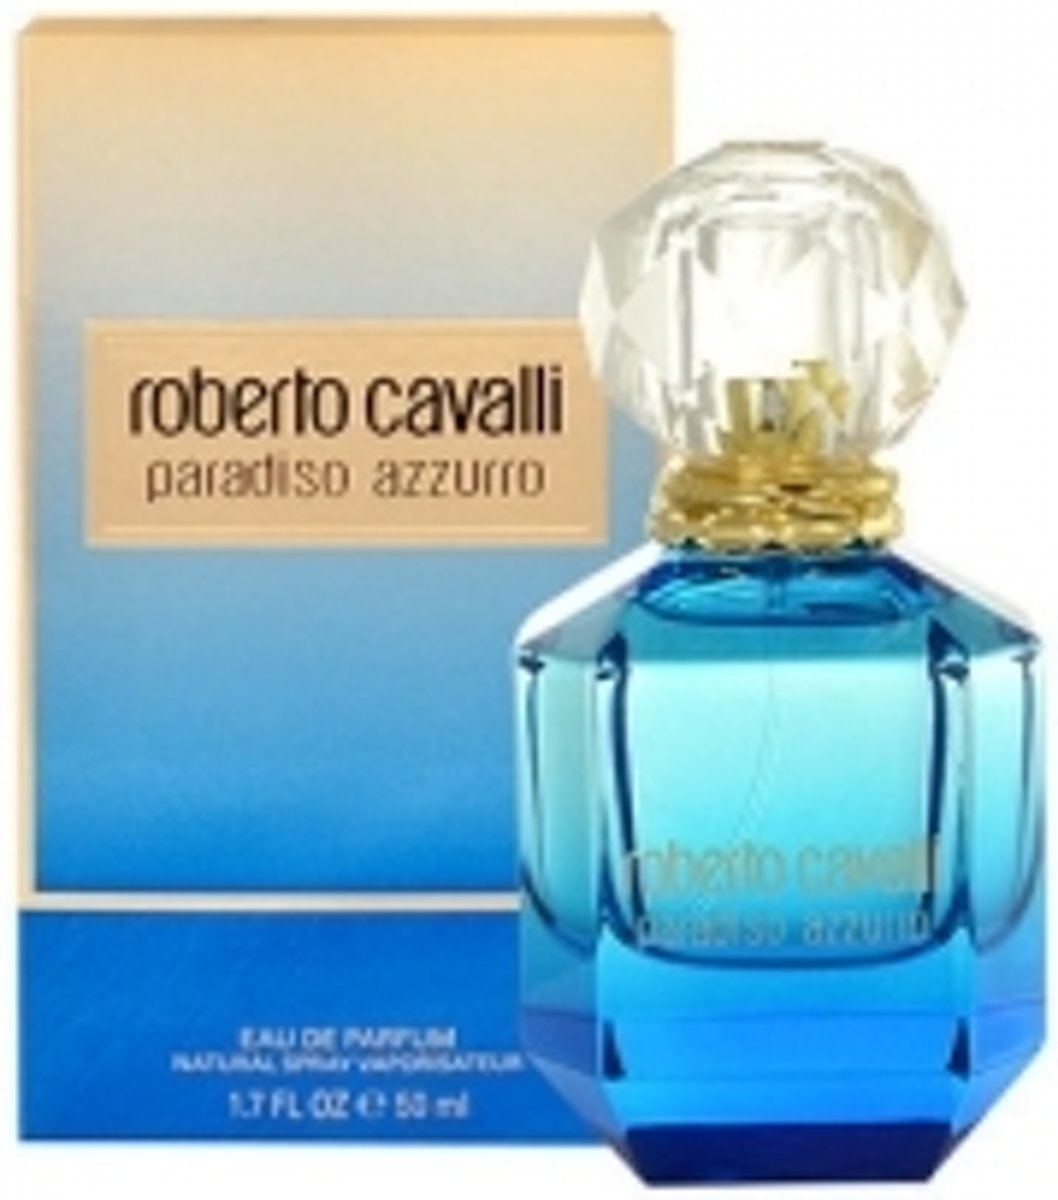 Cavalli paradiso azzurro edp 50 ml spray